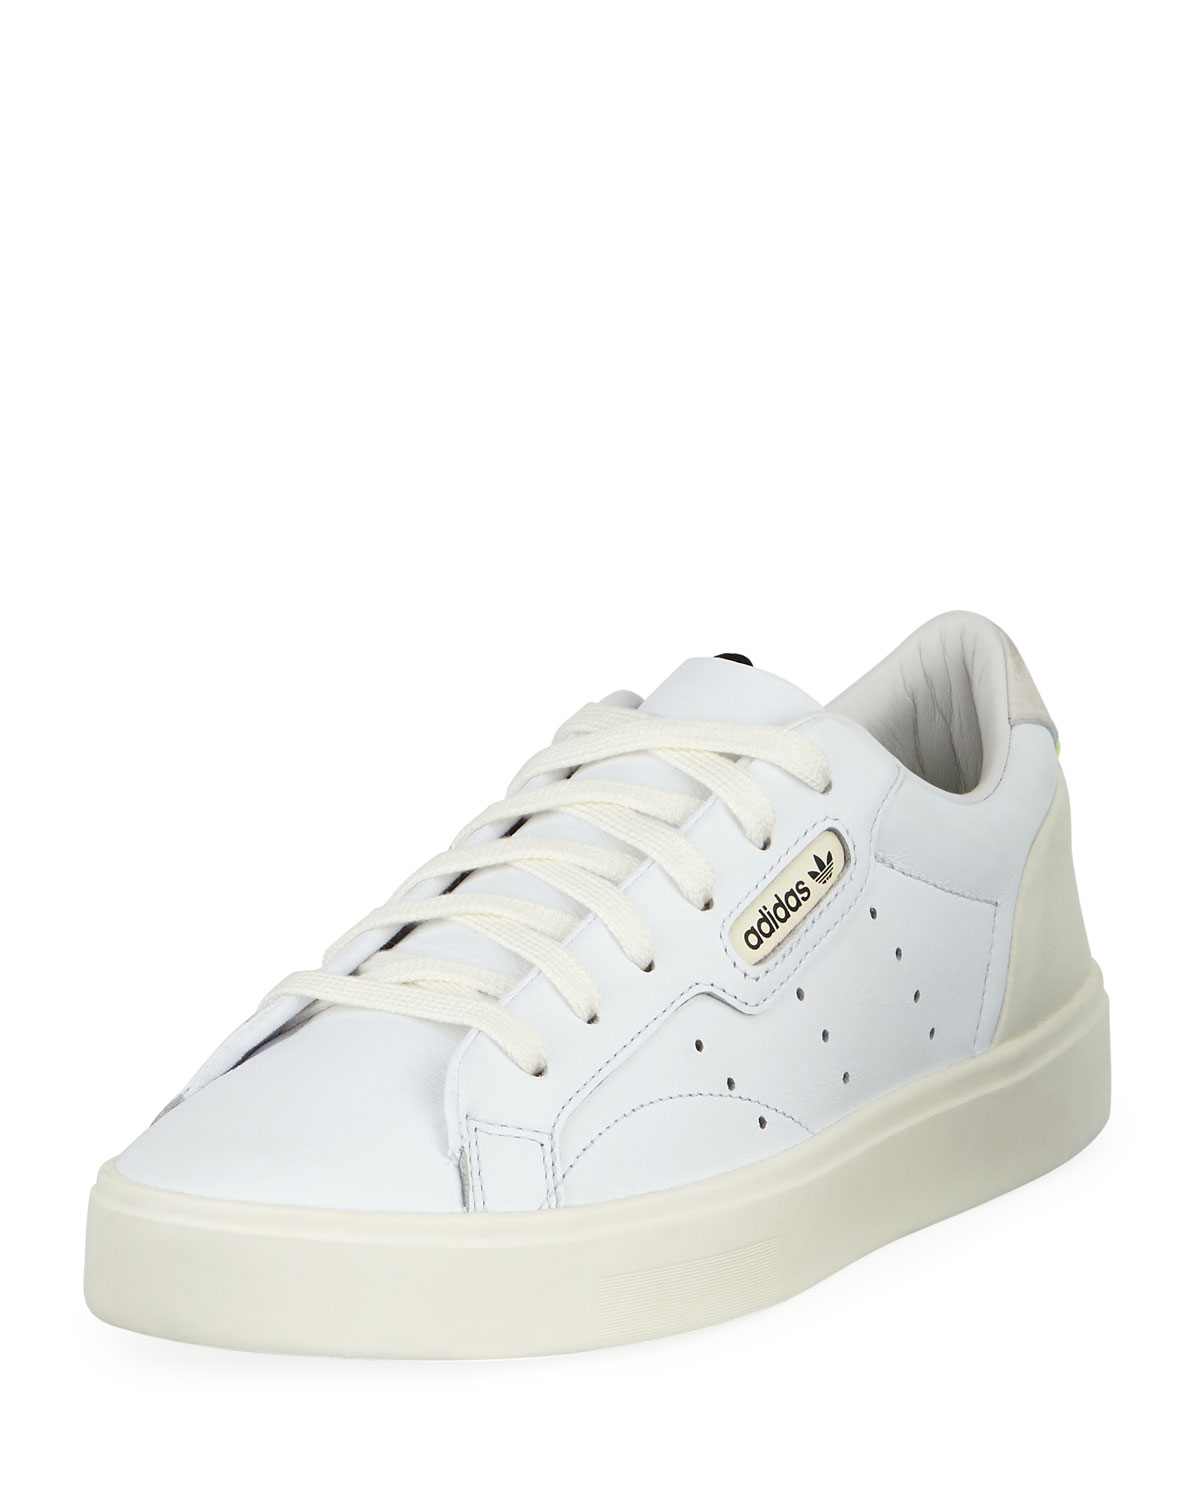 ce48b2dbe280 Adidas Sleek Leather Low-Top Sneakers